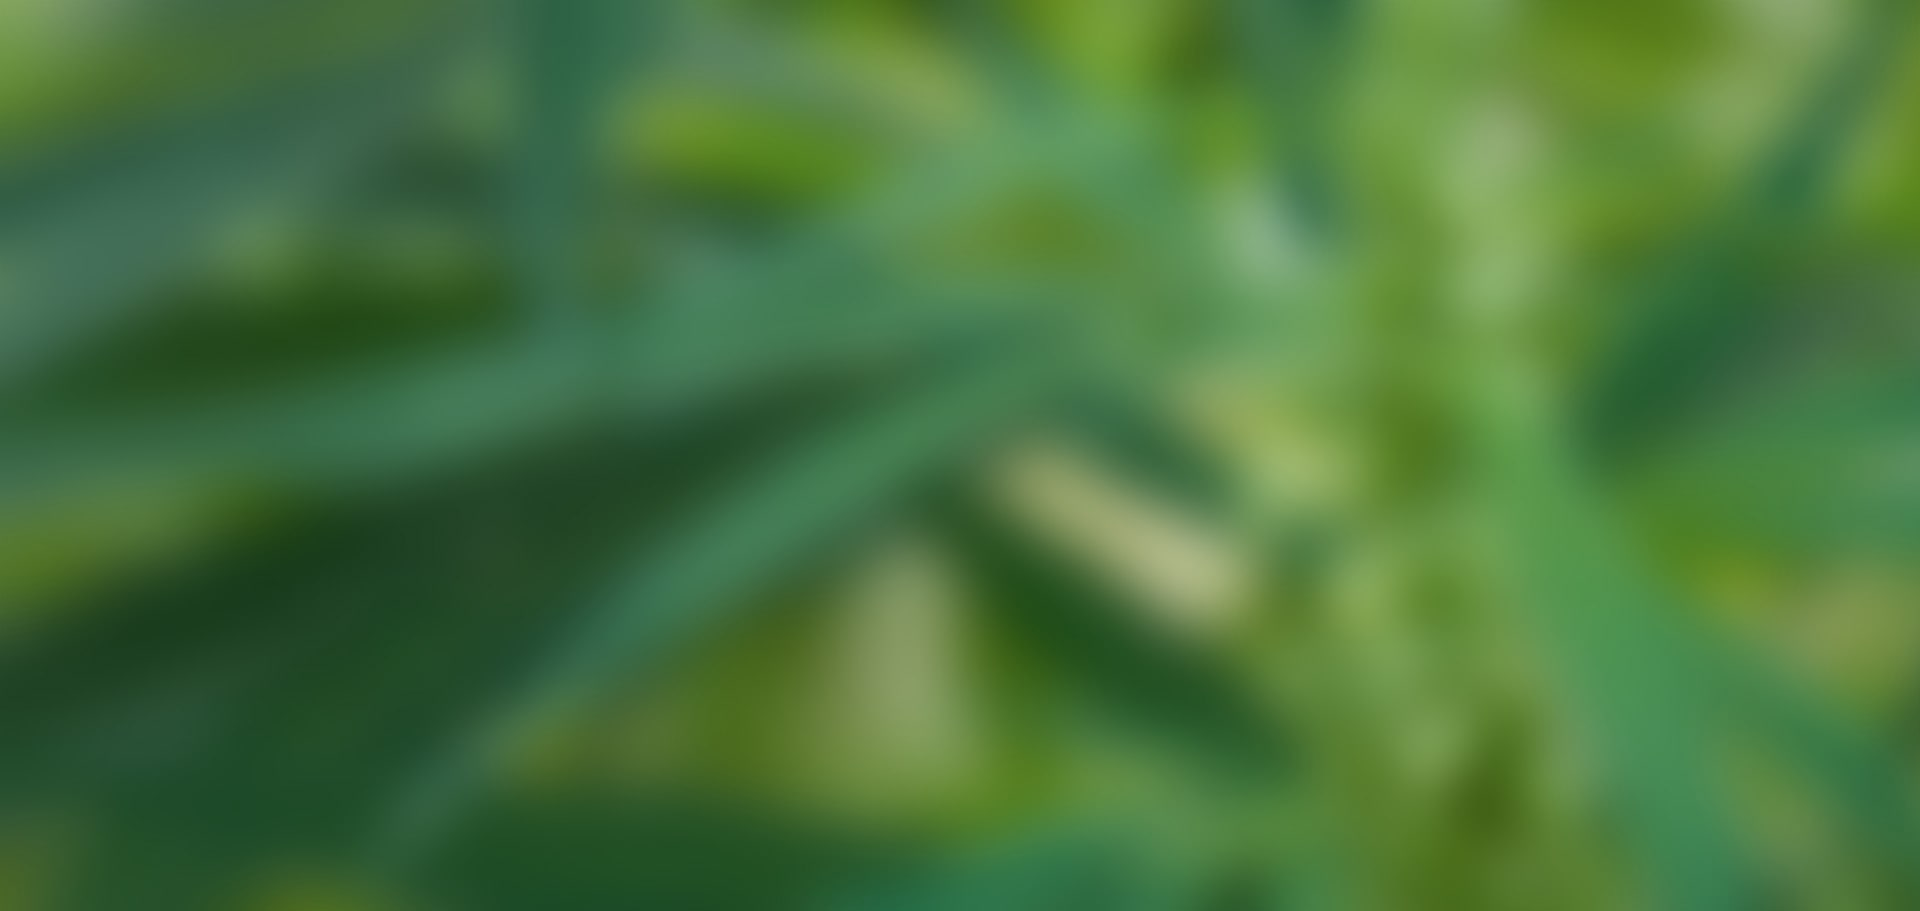 blurred cannabis background